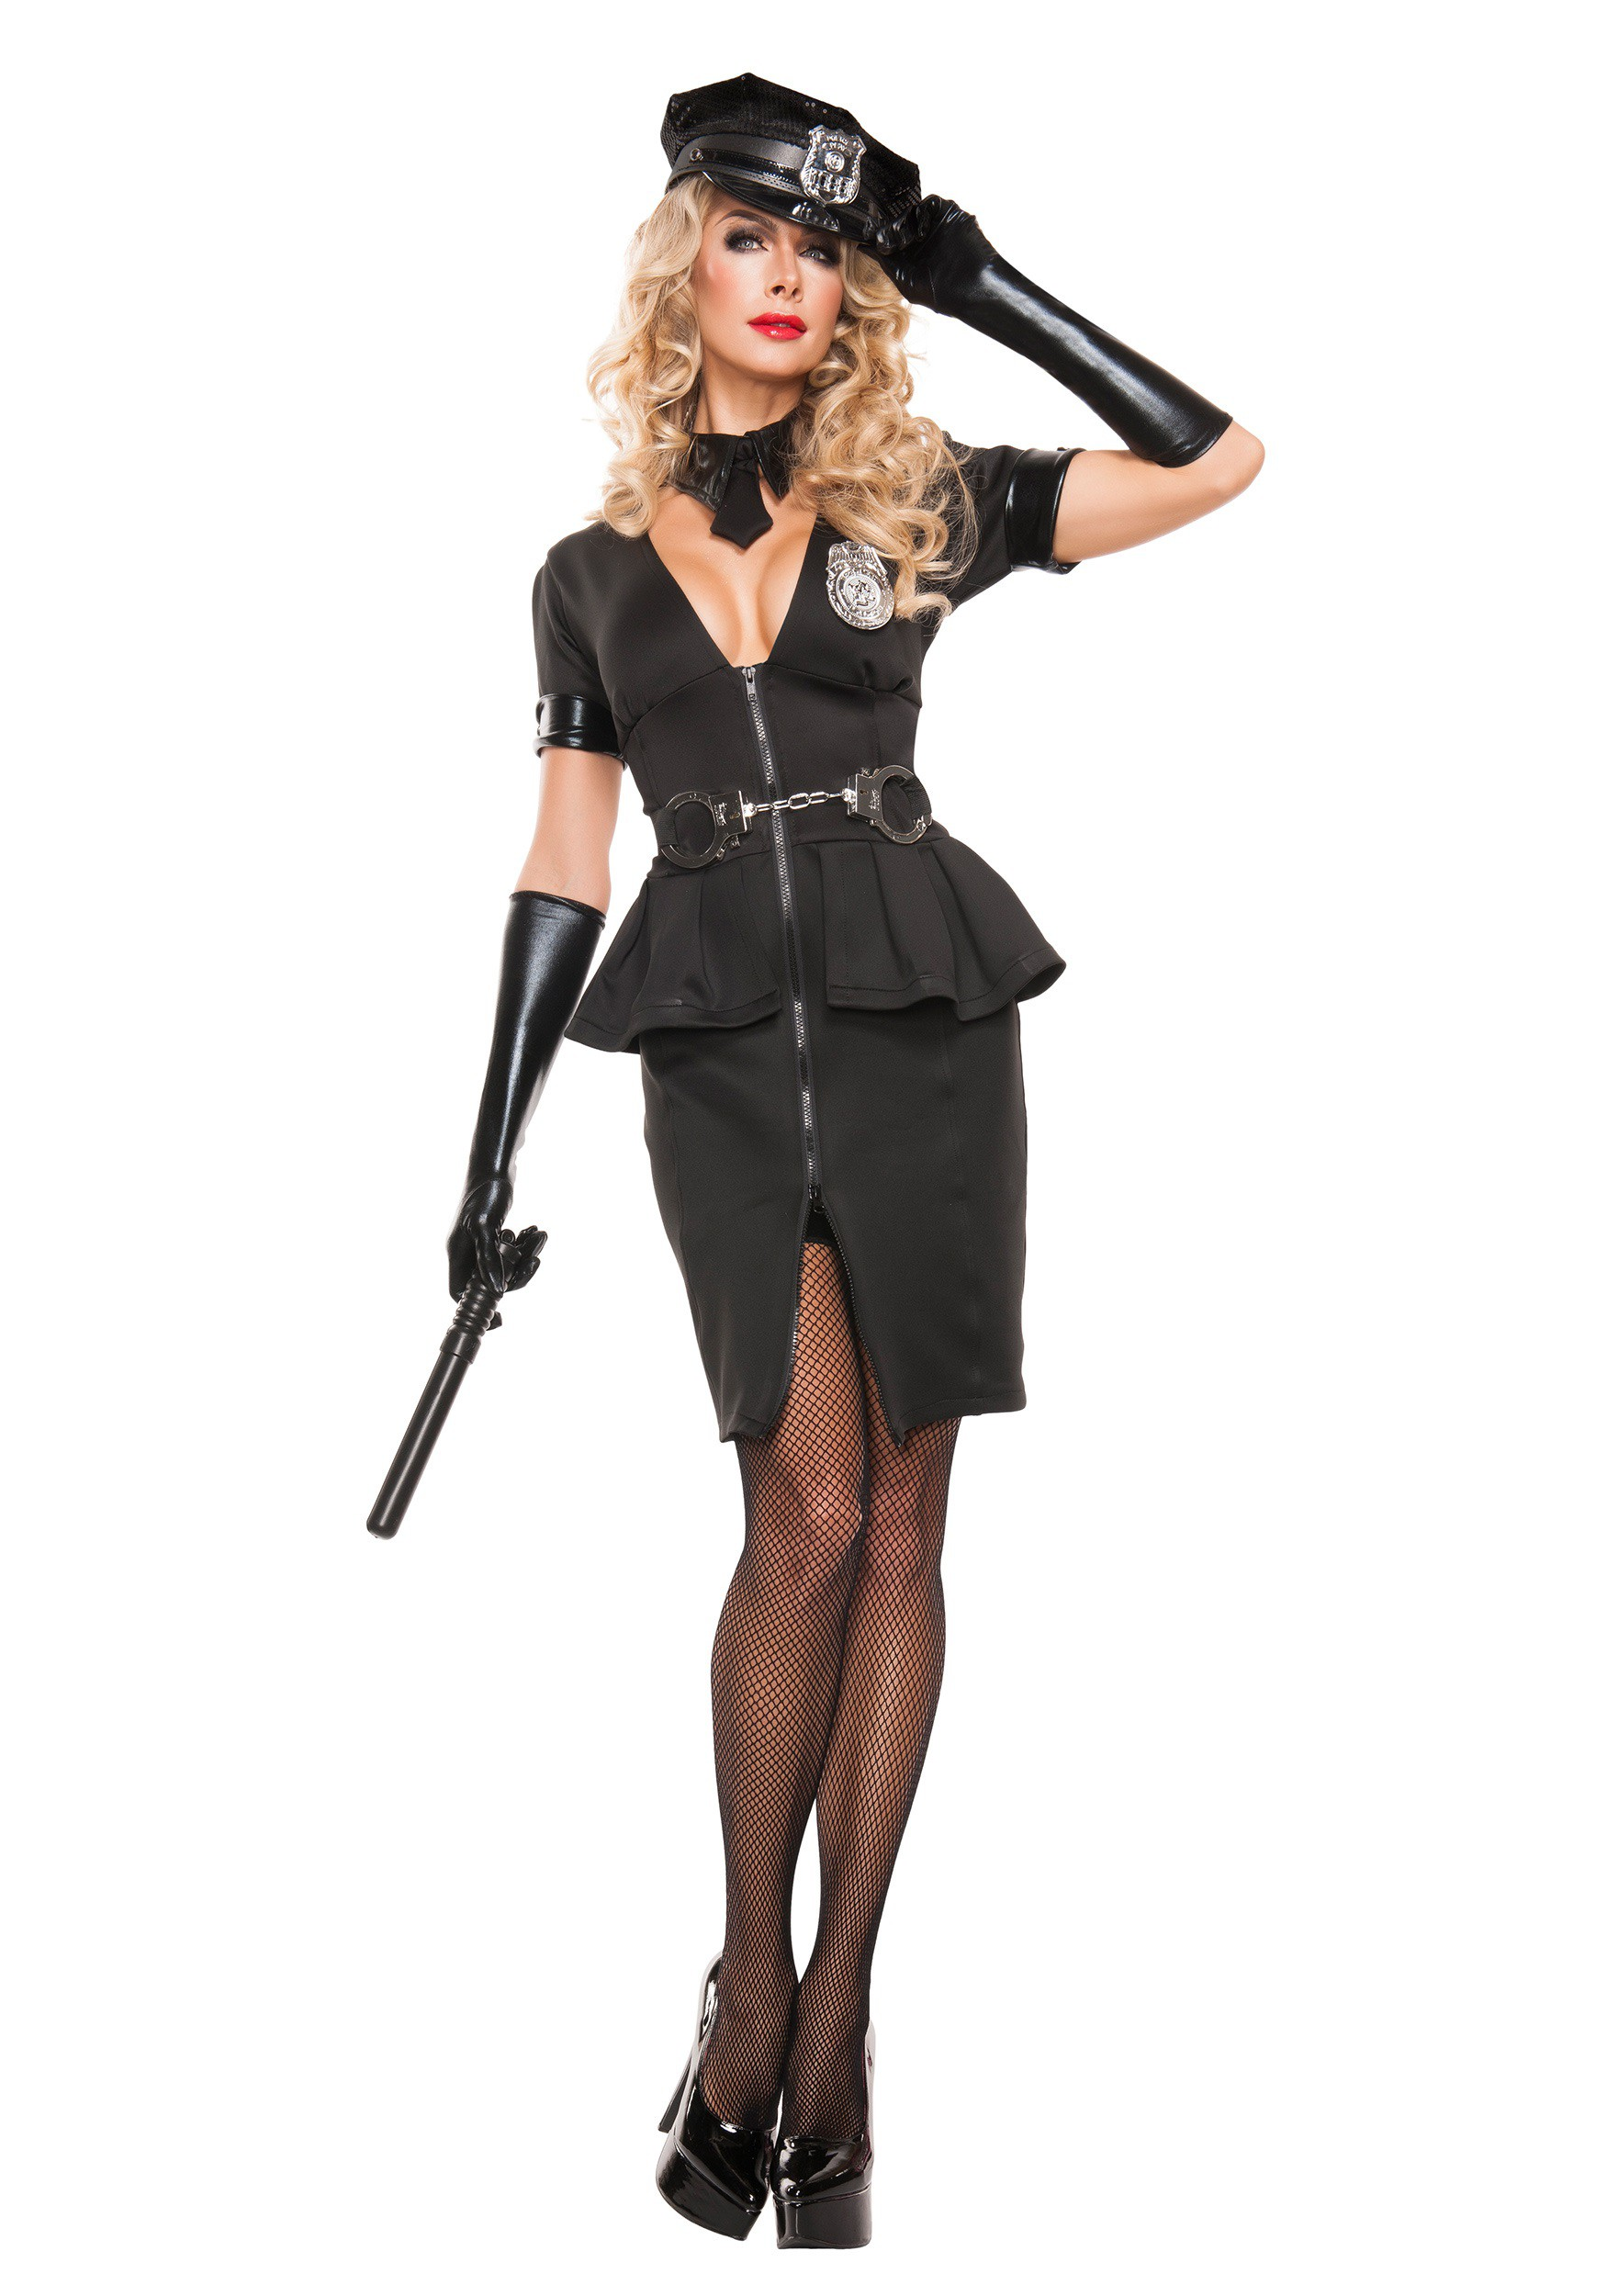 Erotic cop costumes for women